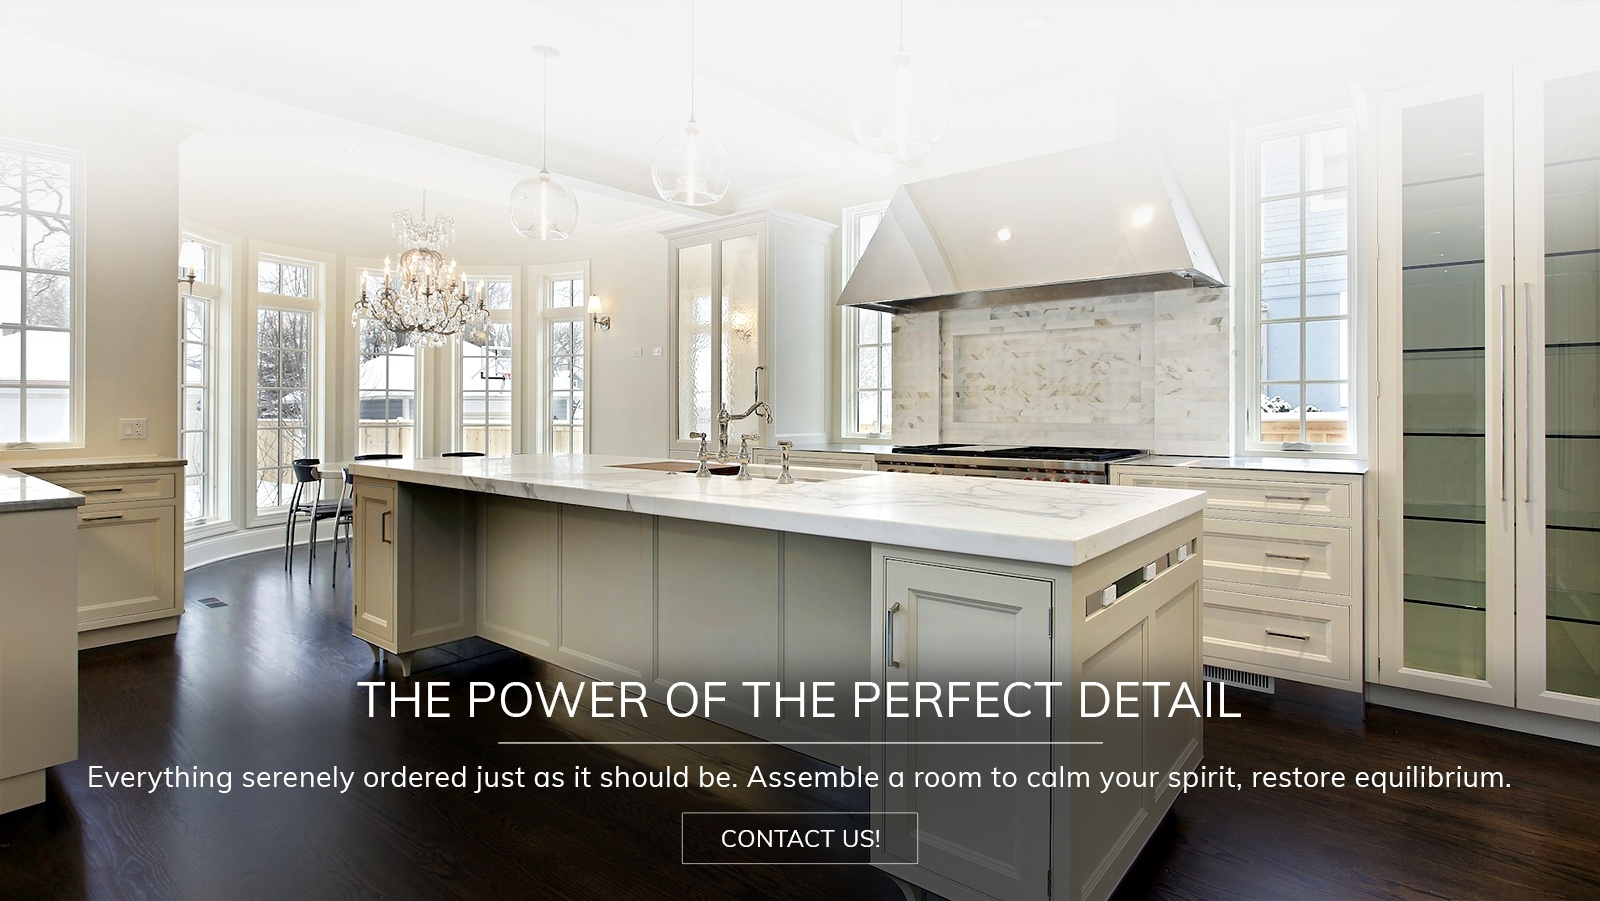 Old Castle Home Design Center - Kitchen Remodeling Company Atlanta